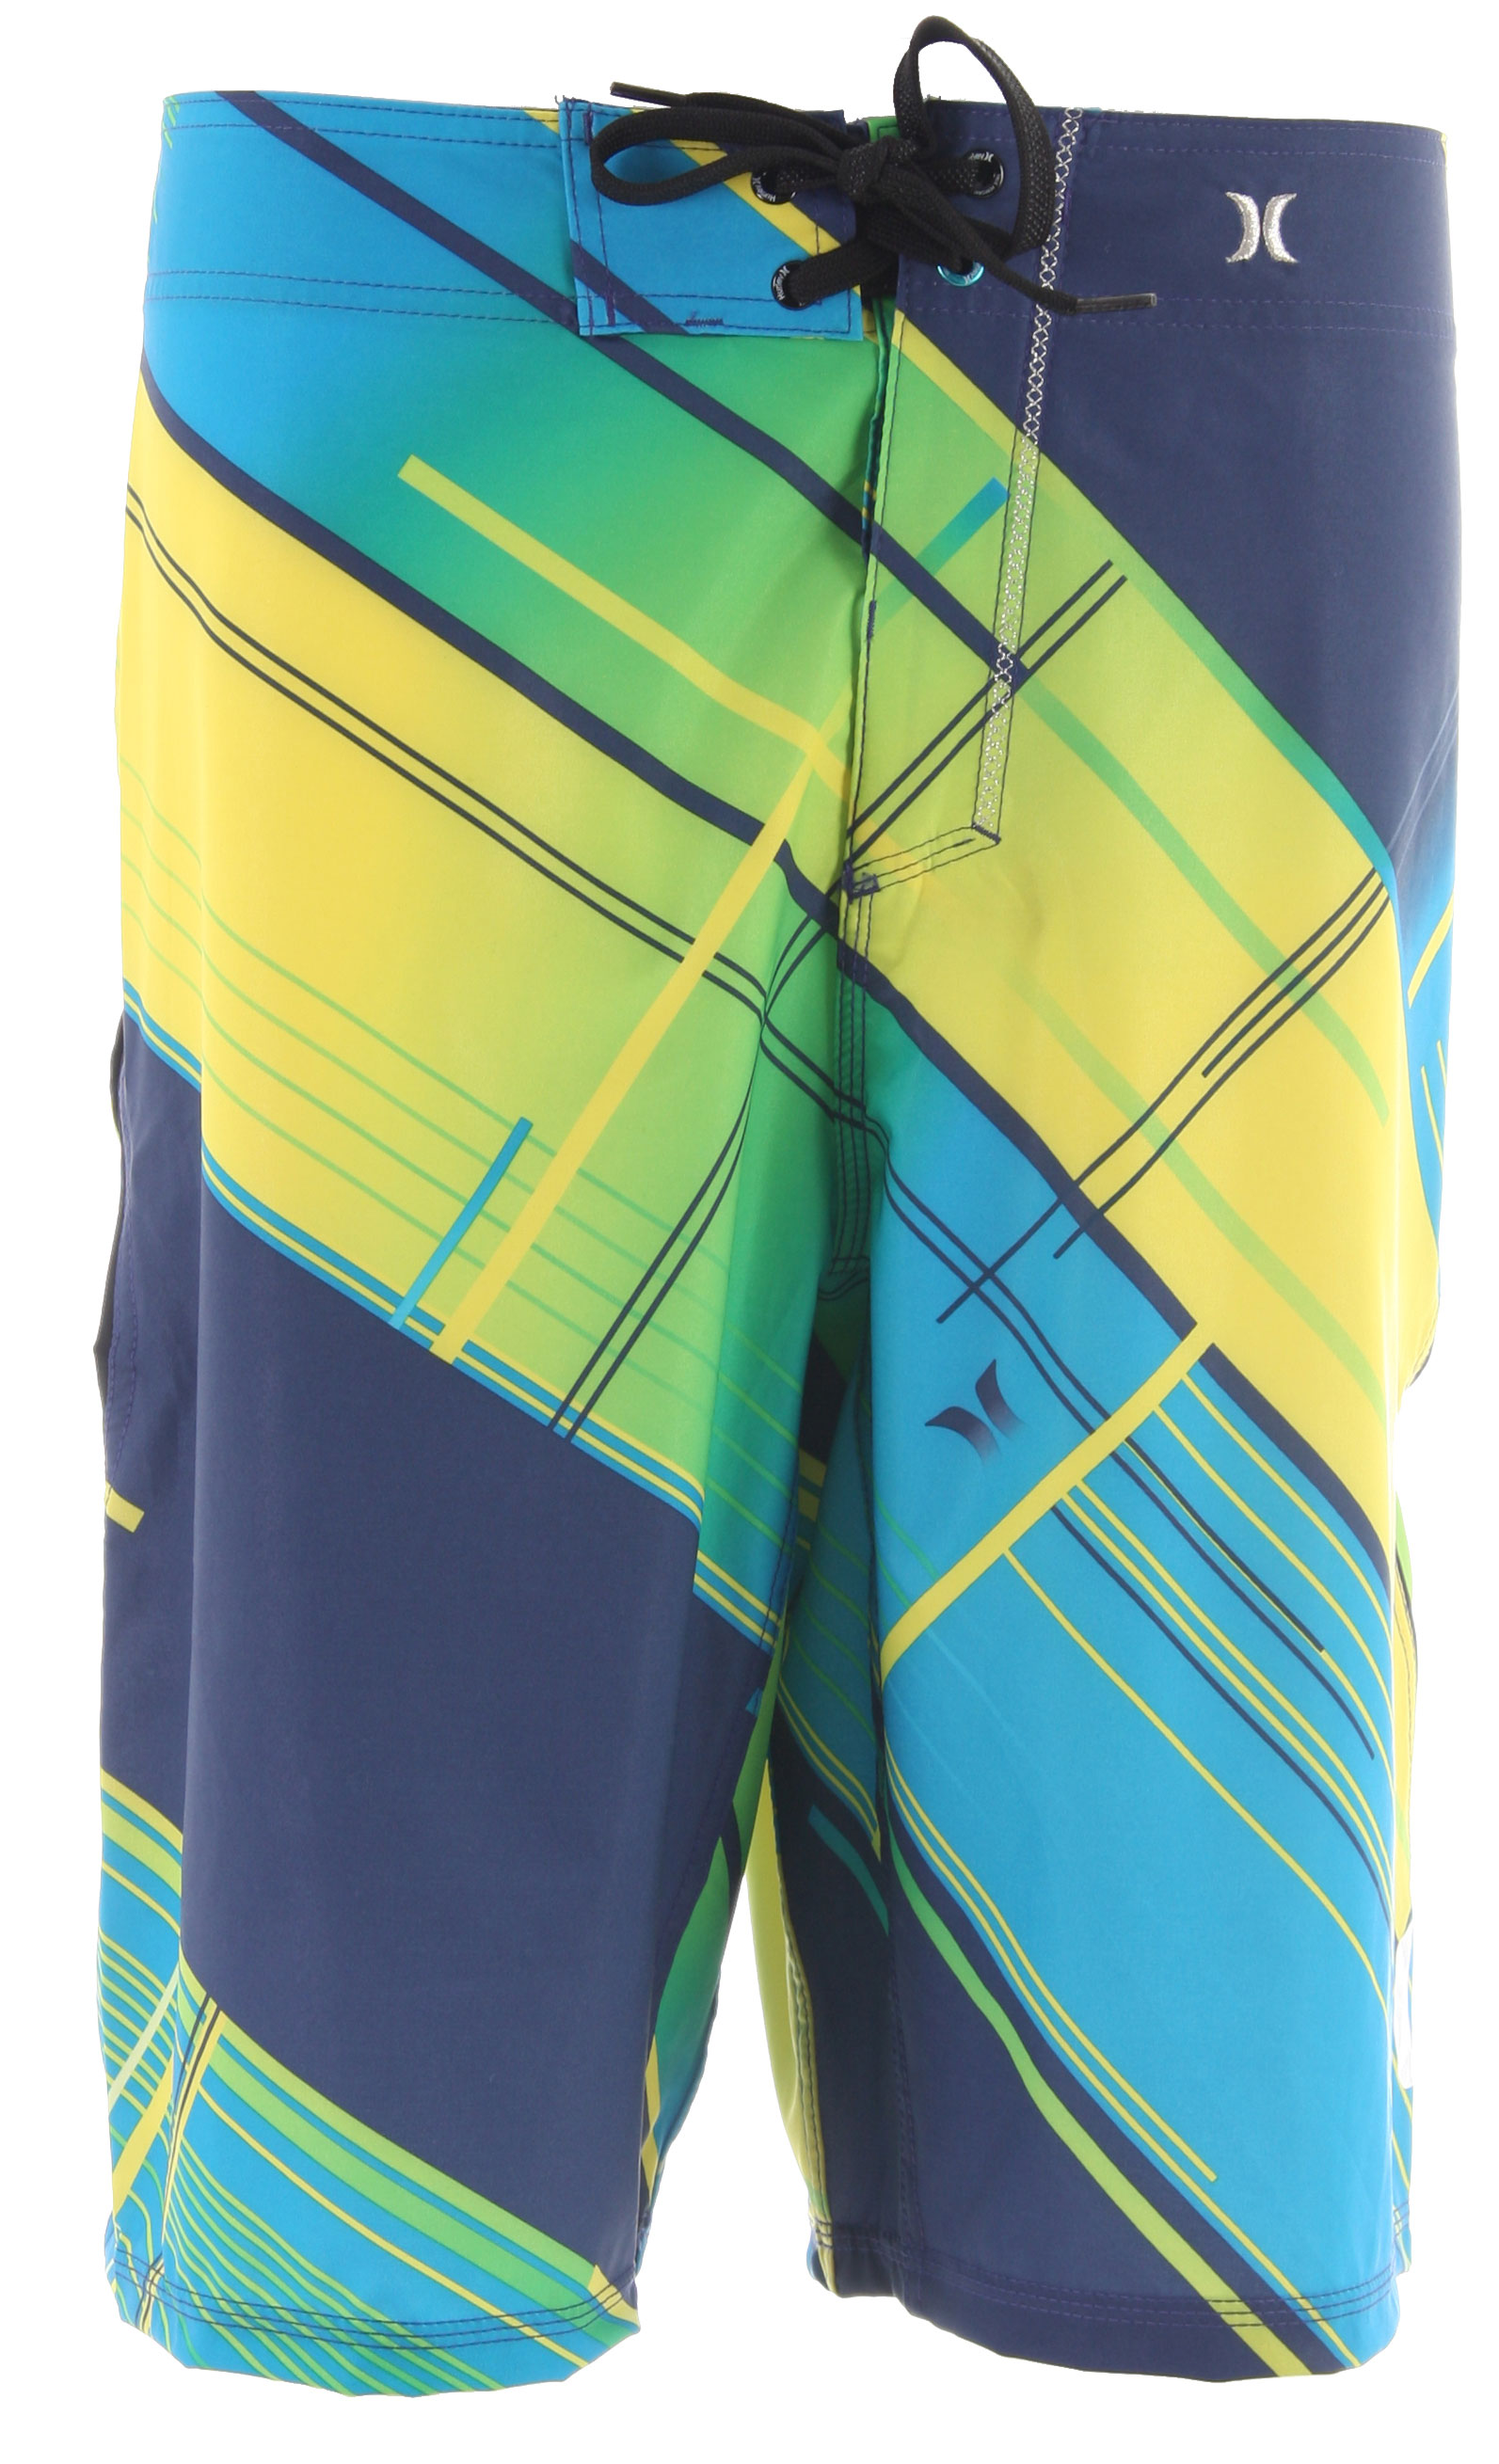 Surf Key Features of the Hurley Phantom 60 Static Boardshorts: True Performance Fit Recycled Phantom 60% stretch Seasonal print patented EZ fly closure signature foil branding metallic embroidery blocked yoke paneling performance water repellency - $39.95